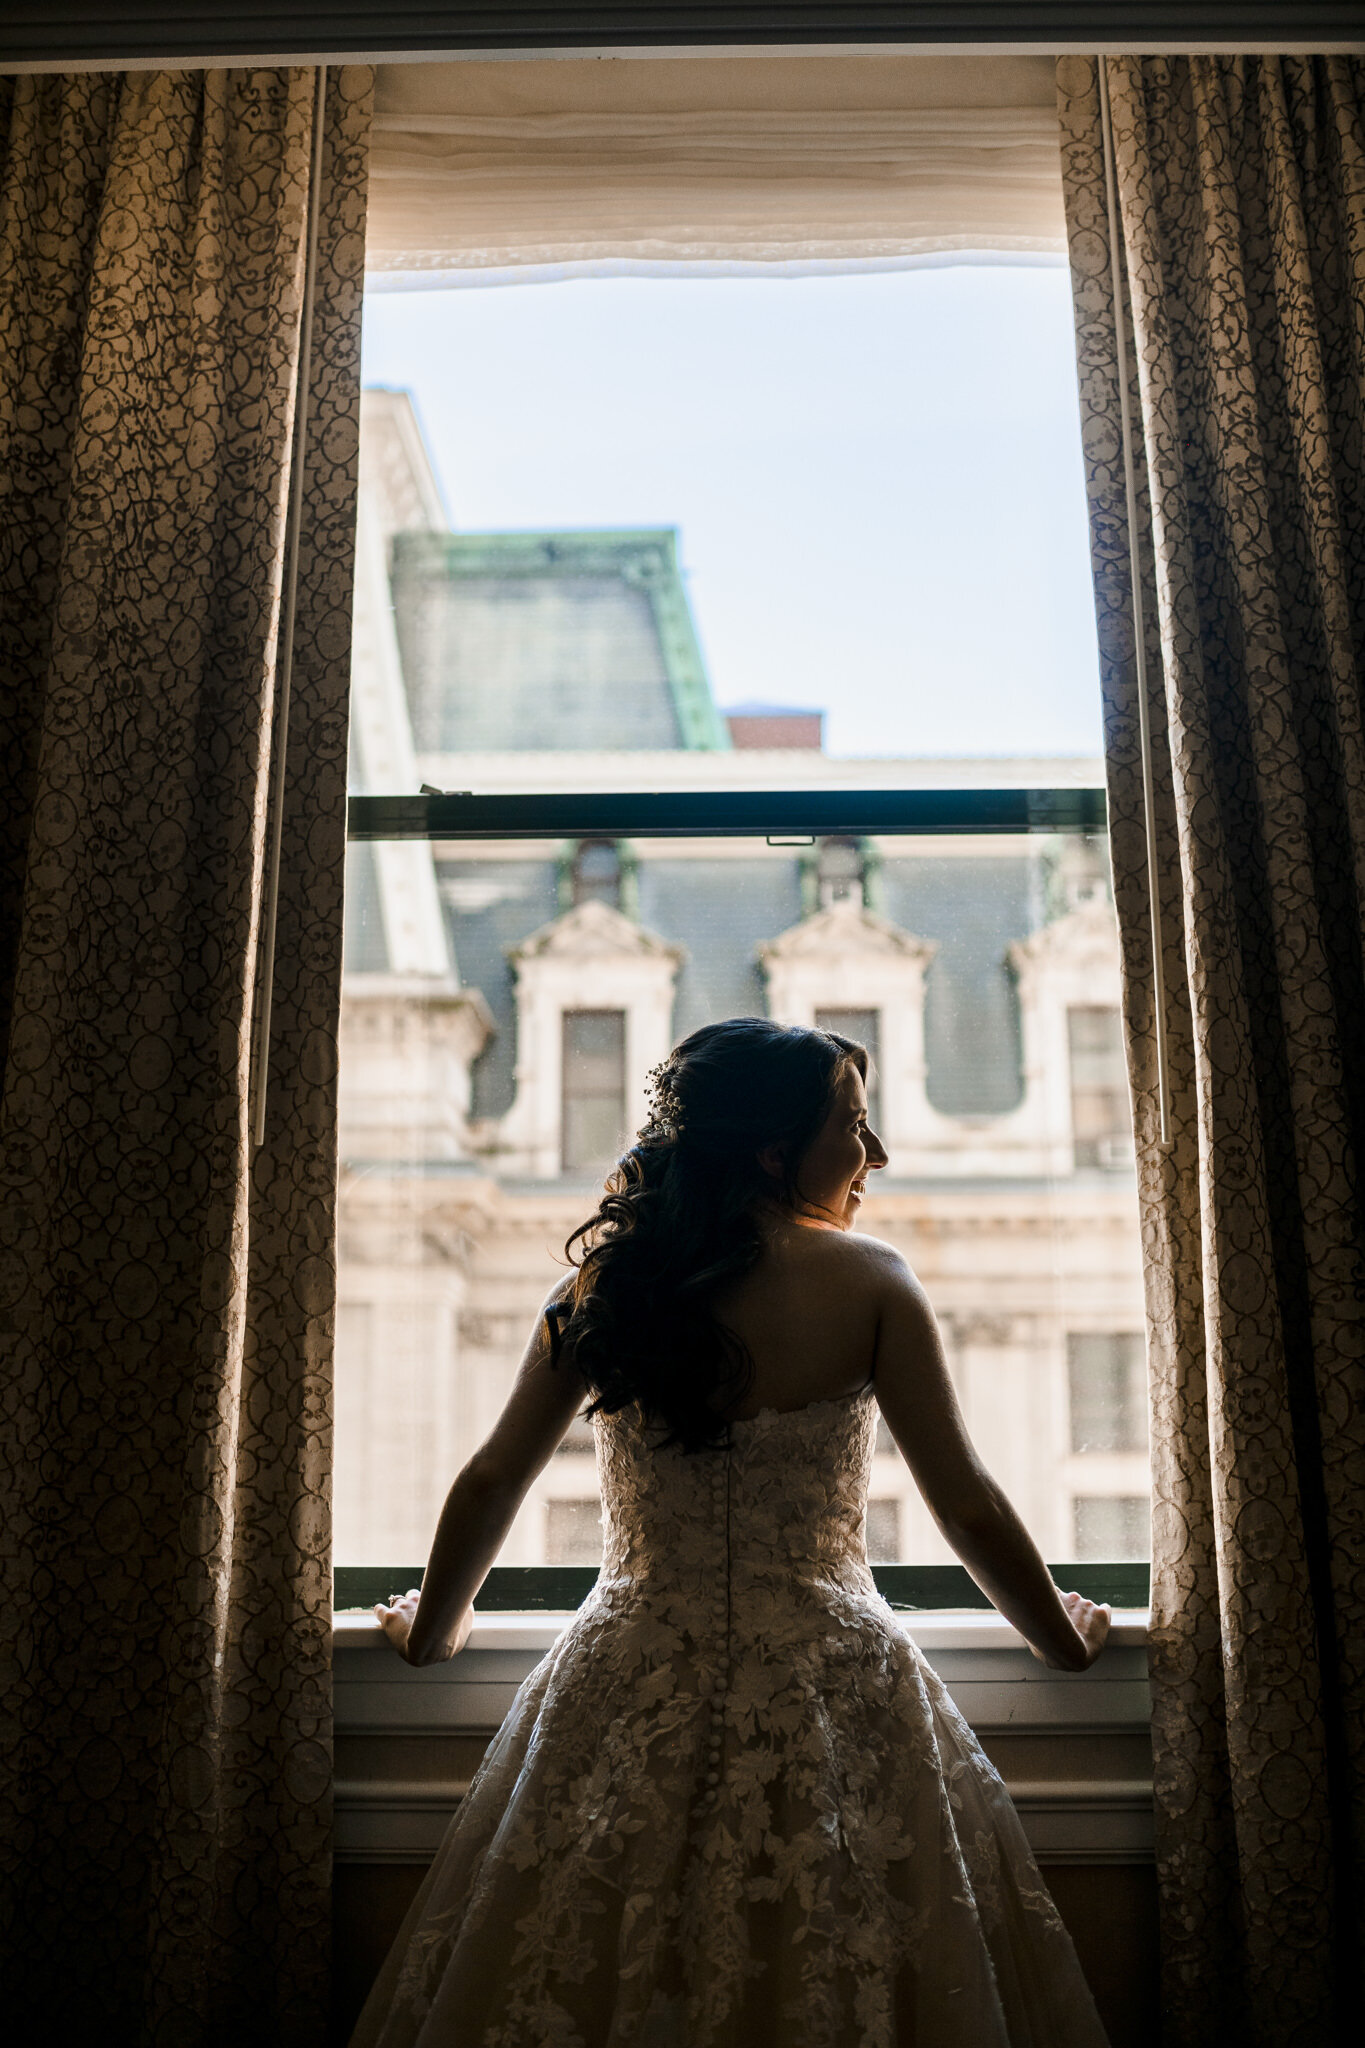 Brozenia-Ritz-Carlton-Philadelphia-Wedding-Photographer-06.JPG